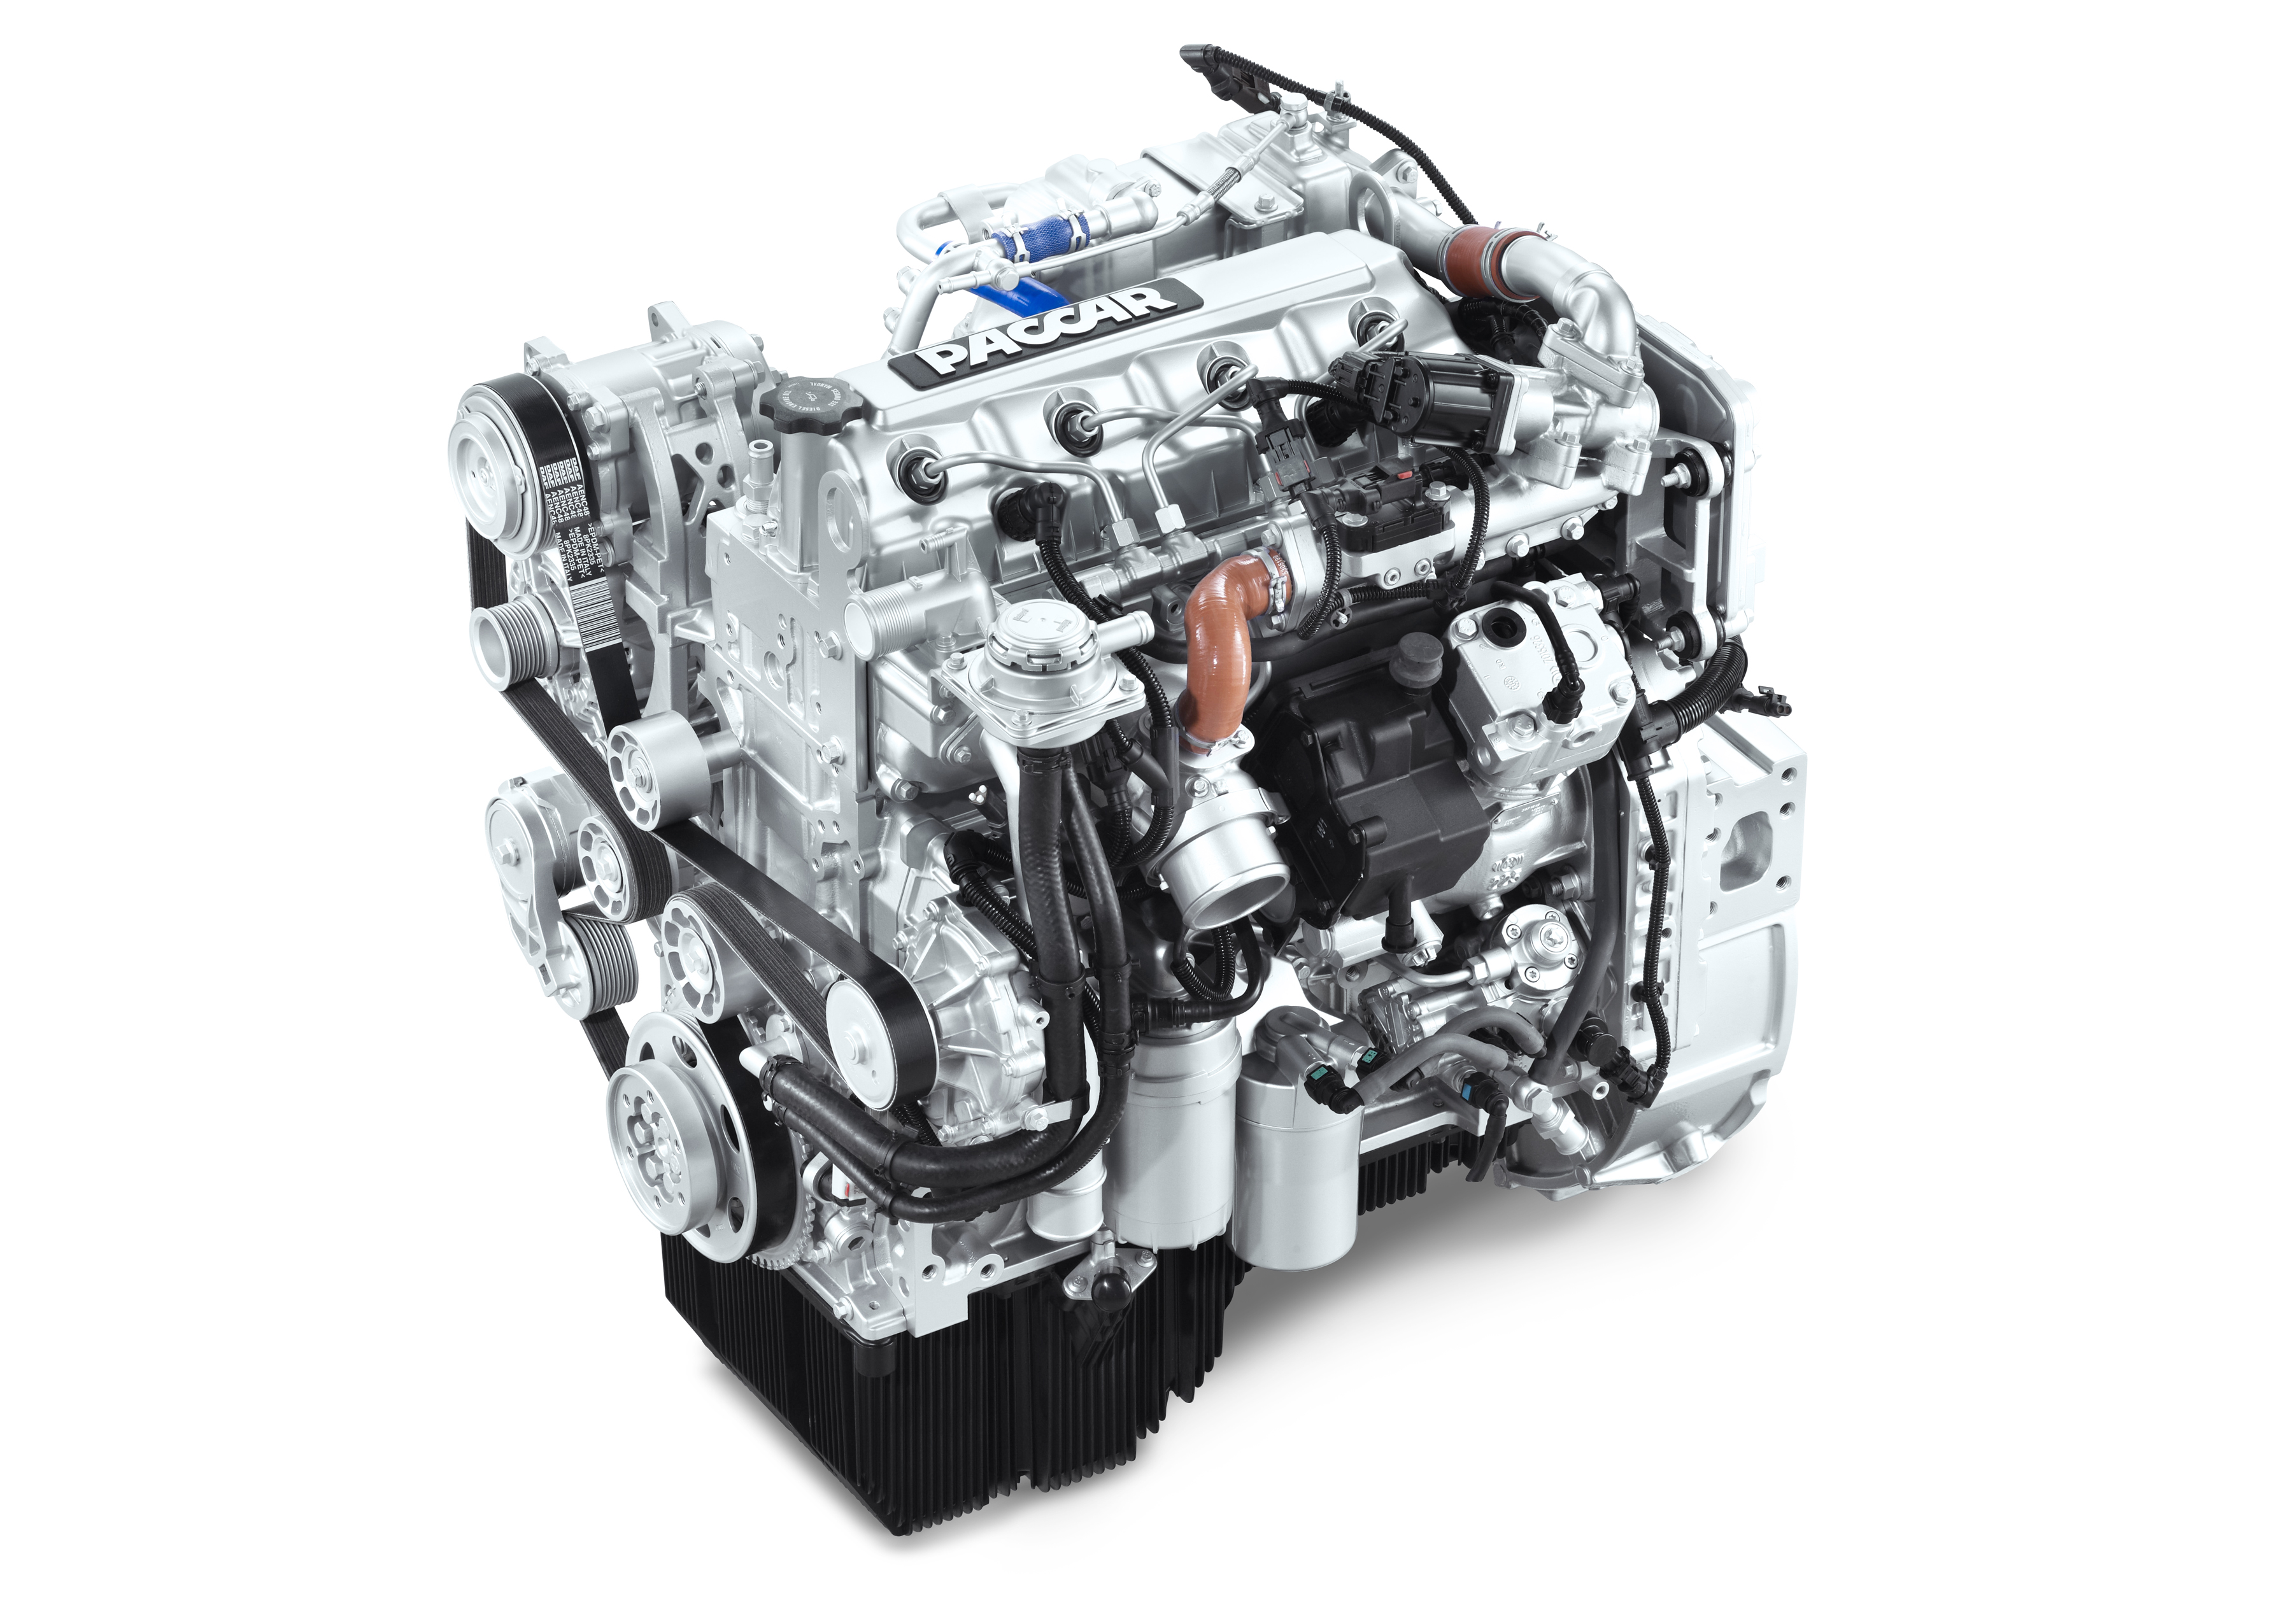 PACCAR PX-5 engine